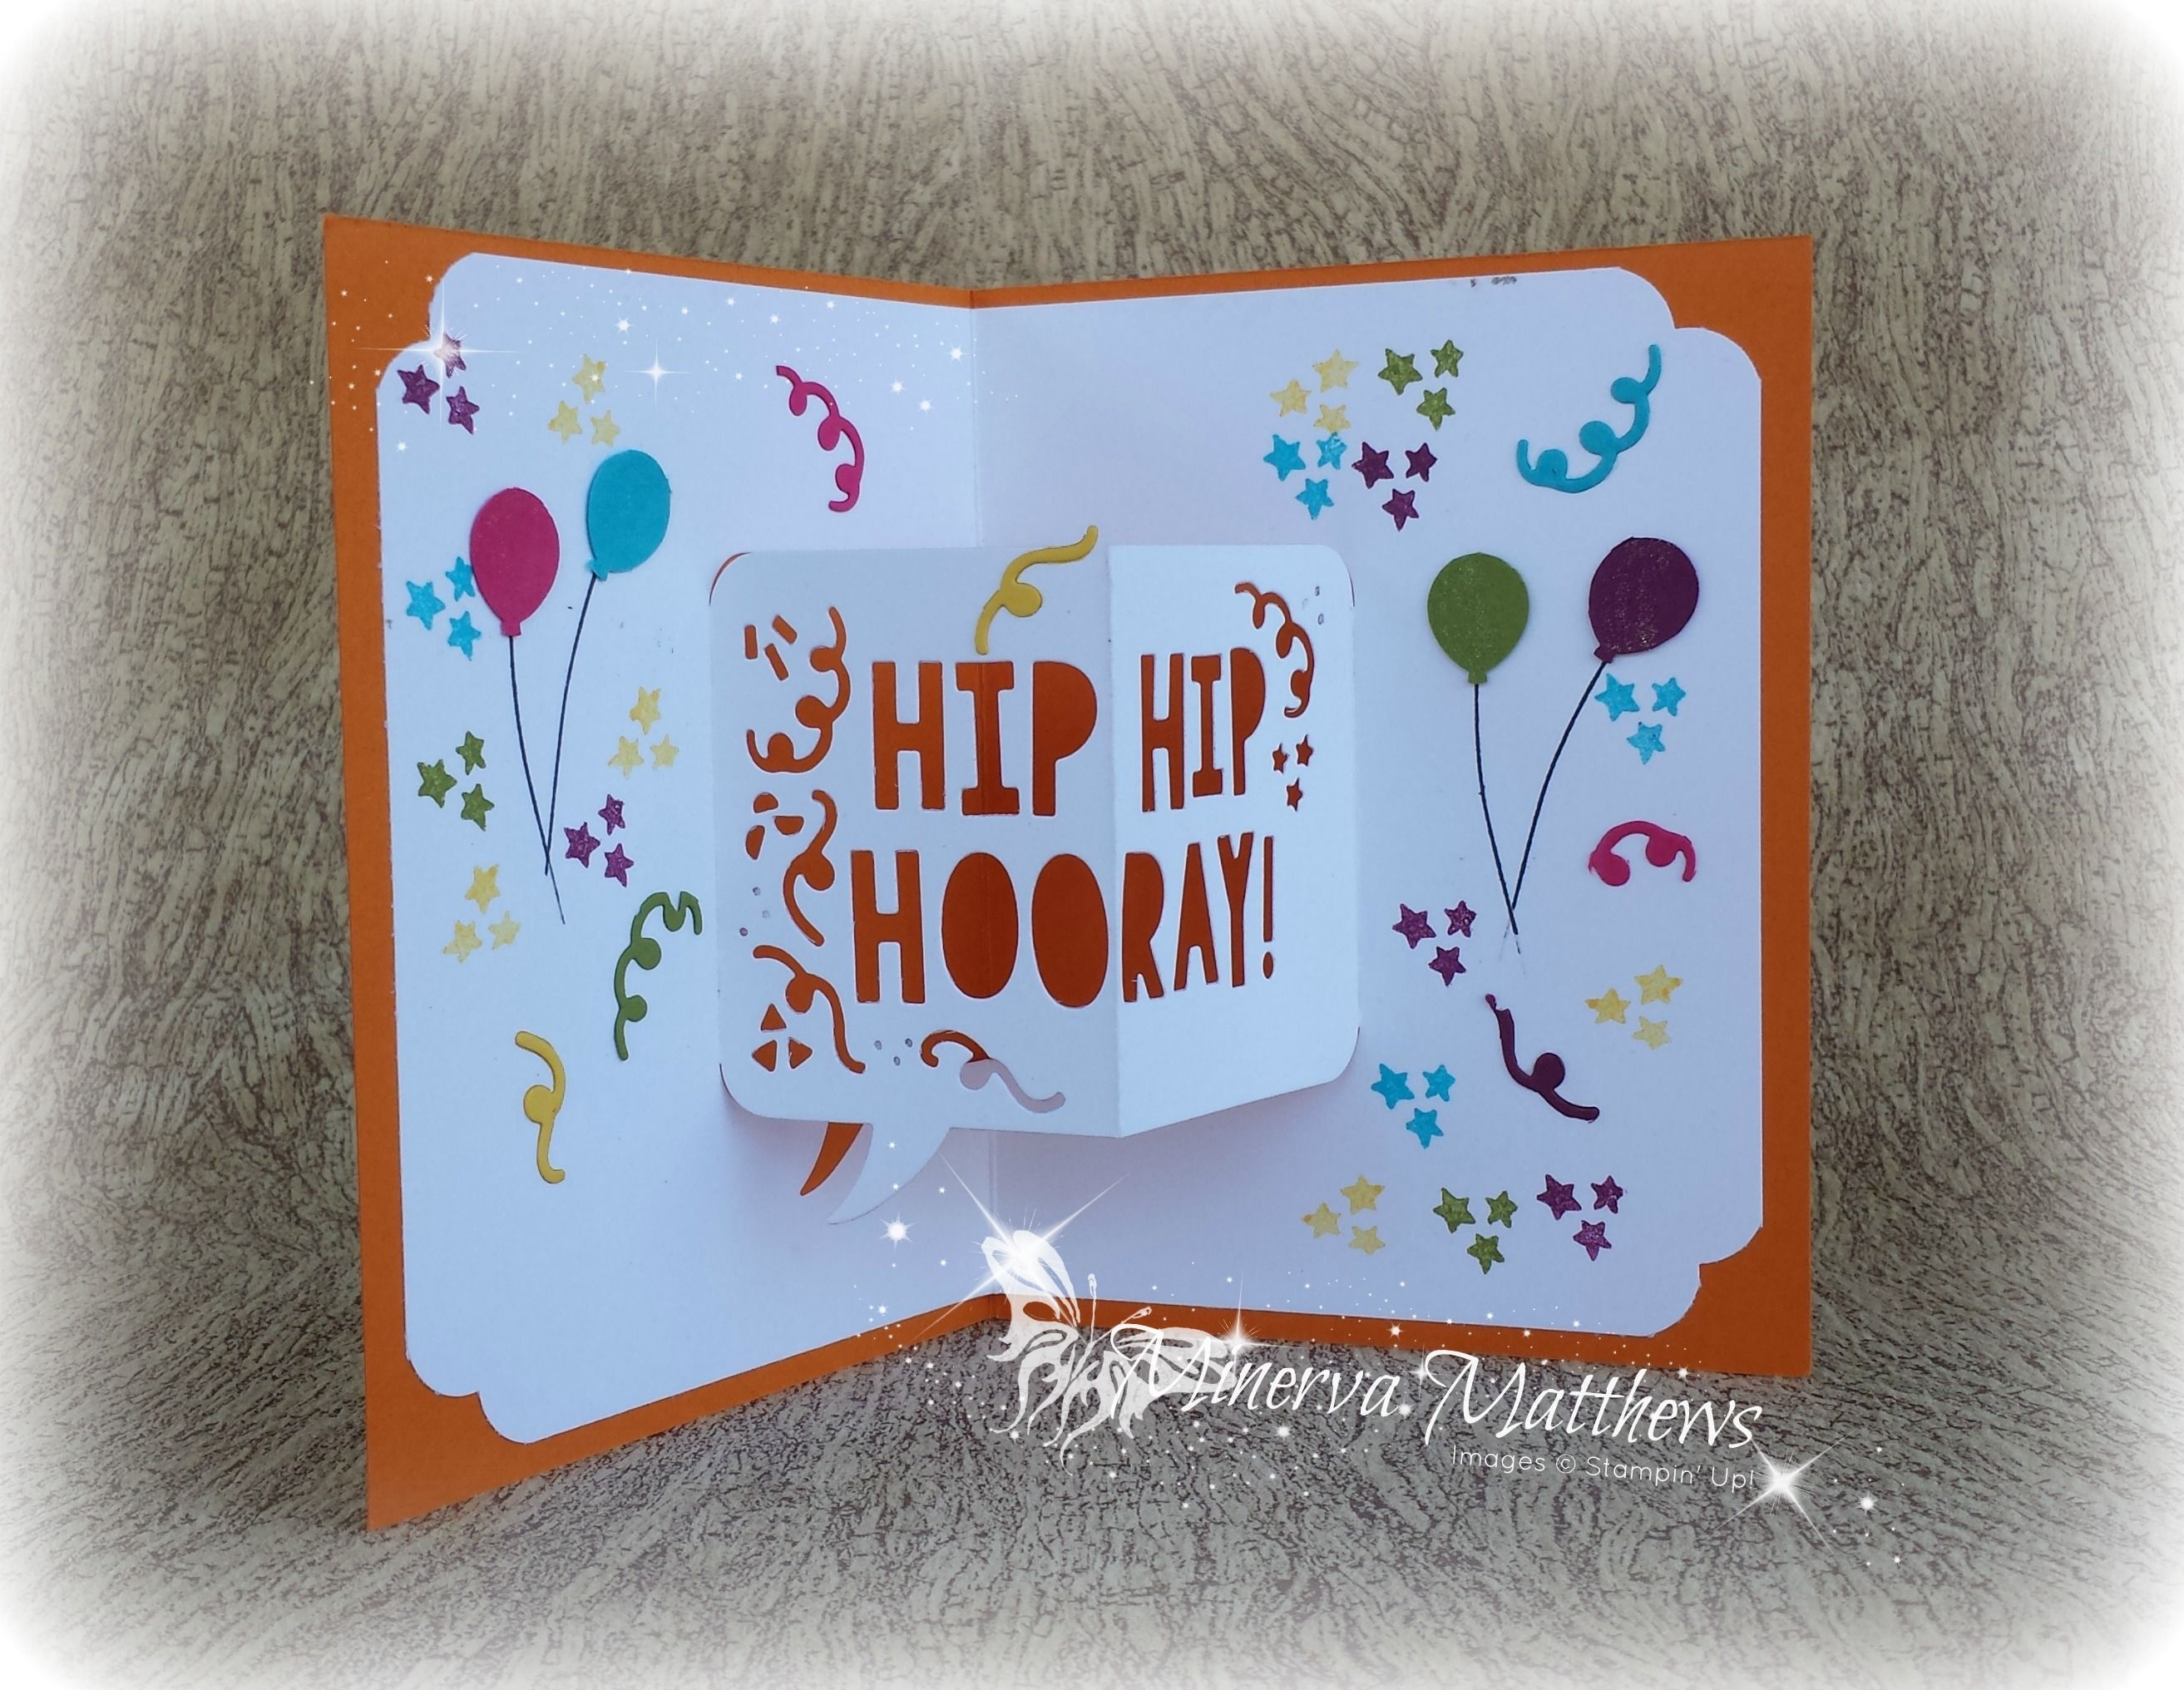 Fun Birthday Cards Party With Cake Stamp Set Party Pop Up Thinlits Dies And Party Punch Pack Happy Birthday Cards Paper Crafts Cards Handmade Birthday Cards